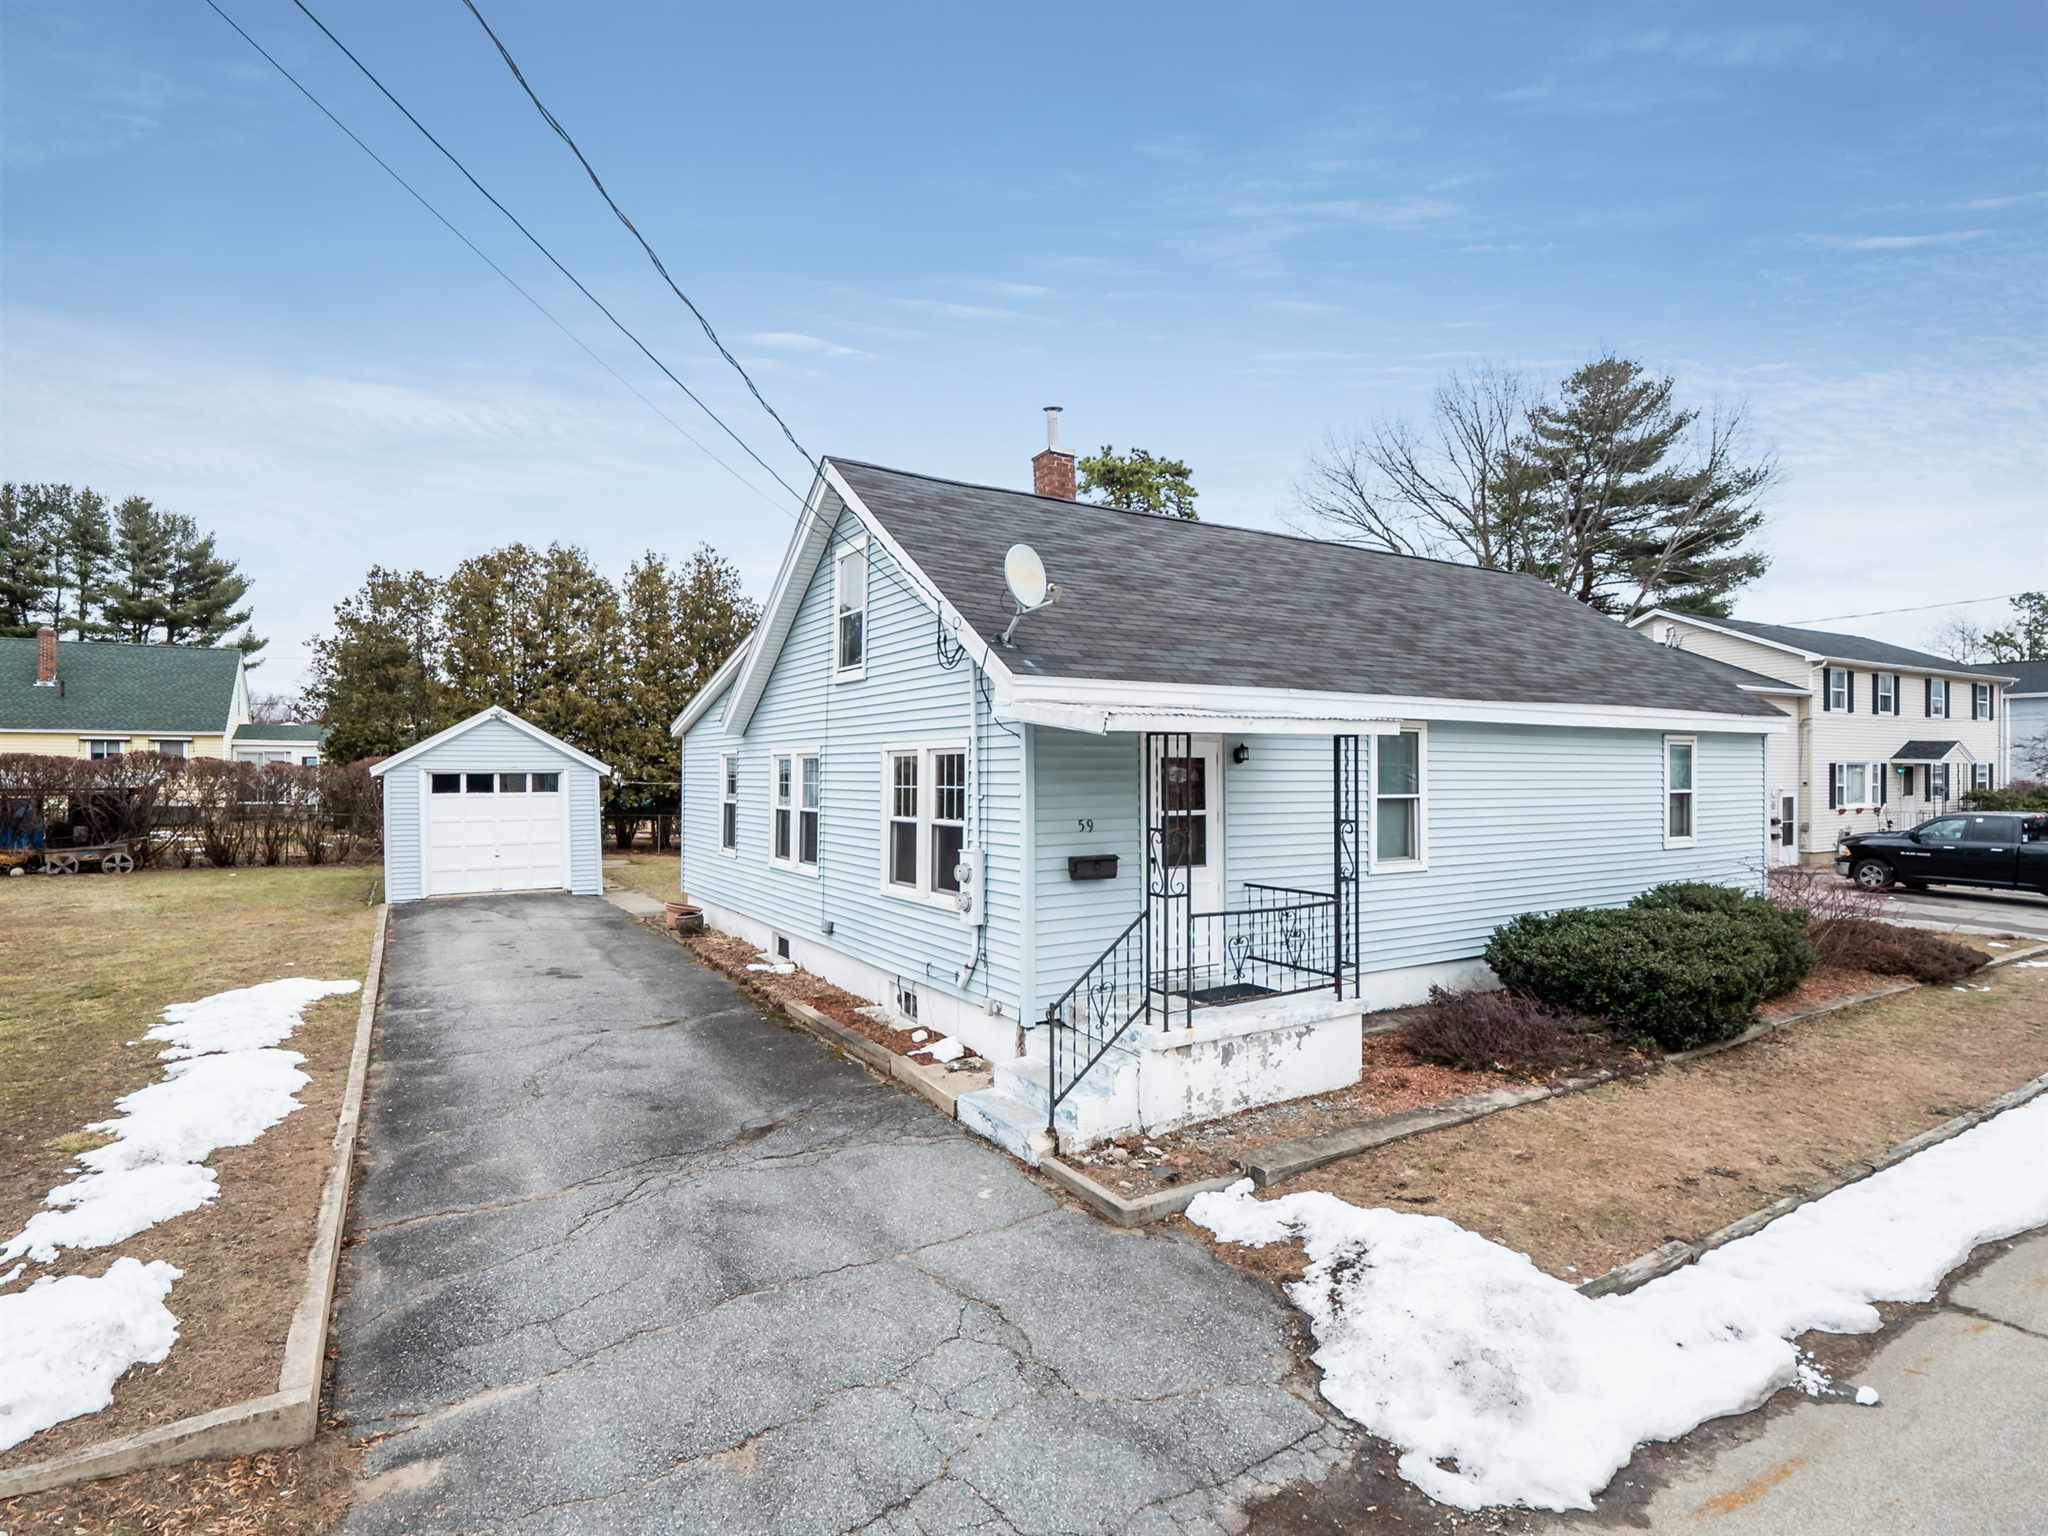 Photo of 59 Nagle Street Nashua NH 03060